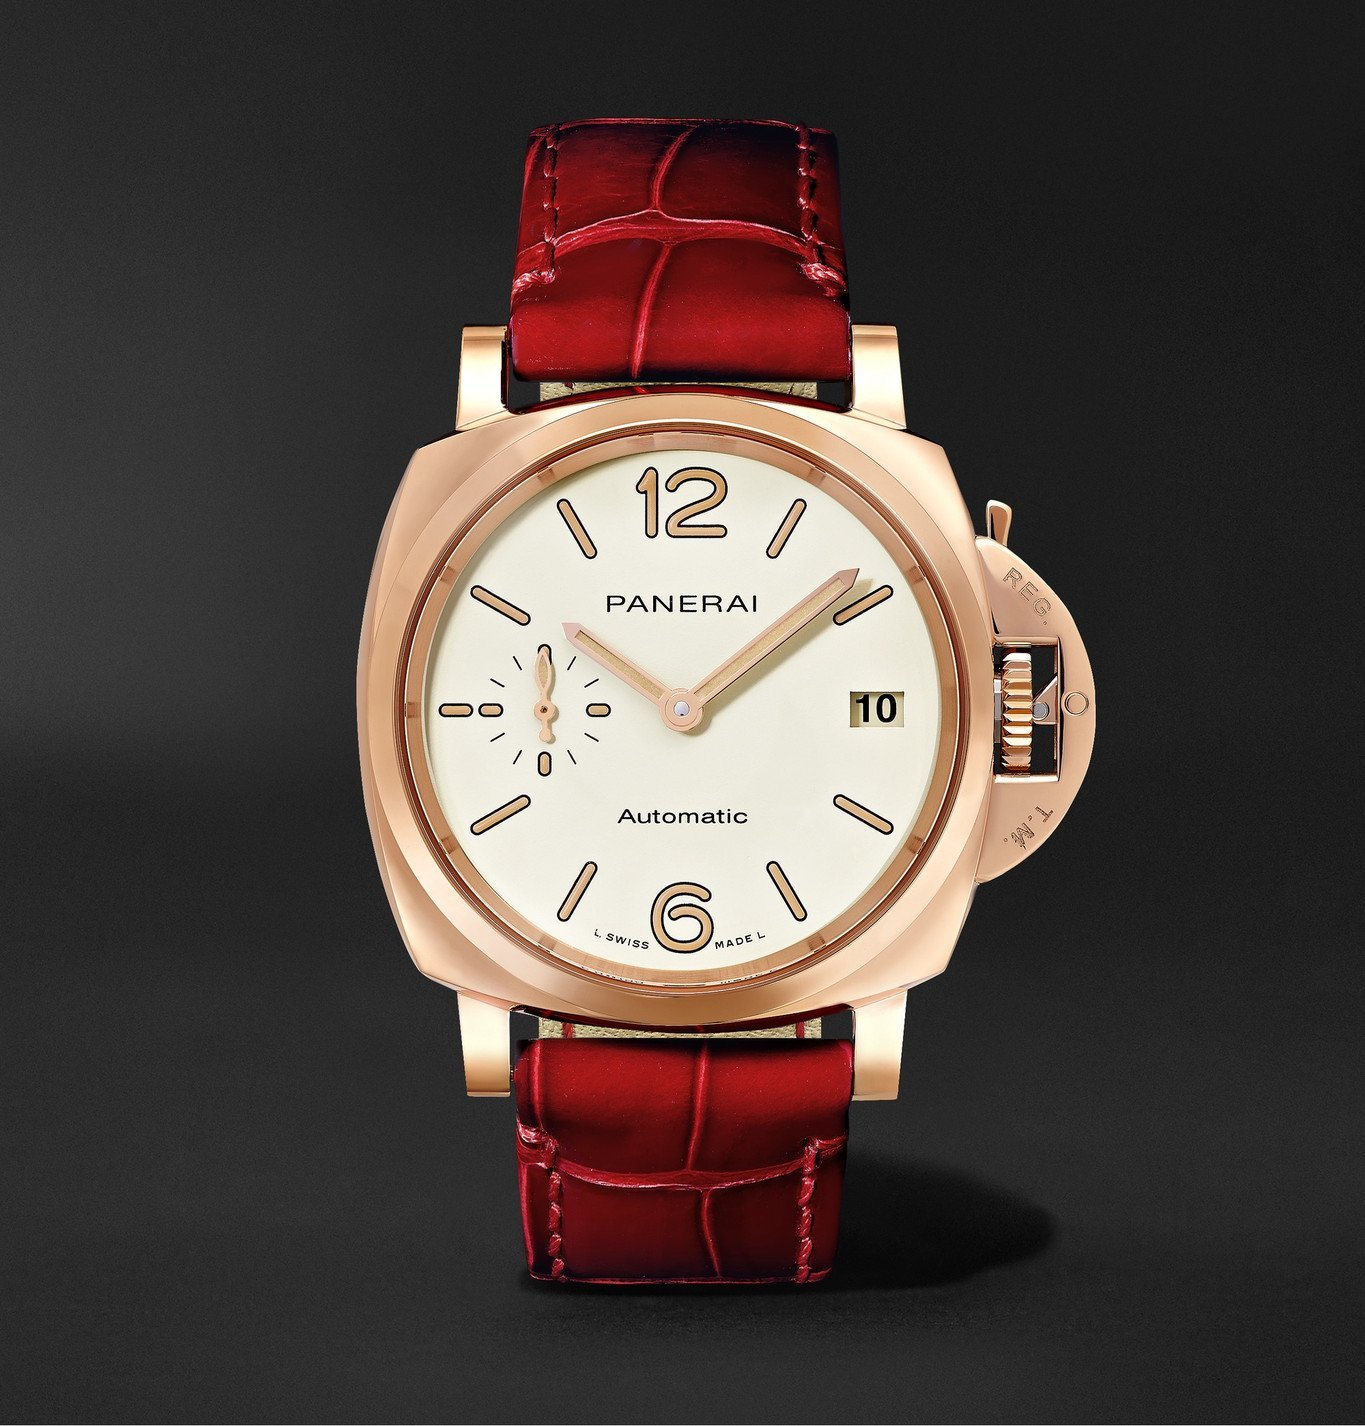 Photo: Panerai - Luminor Due Automatic 38mm Goldtech and Alligator Watch - Red